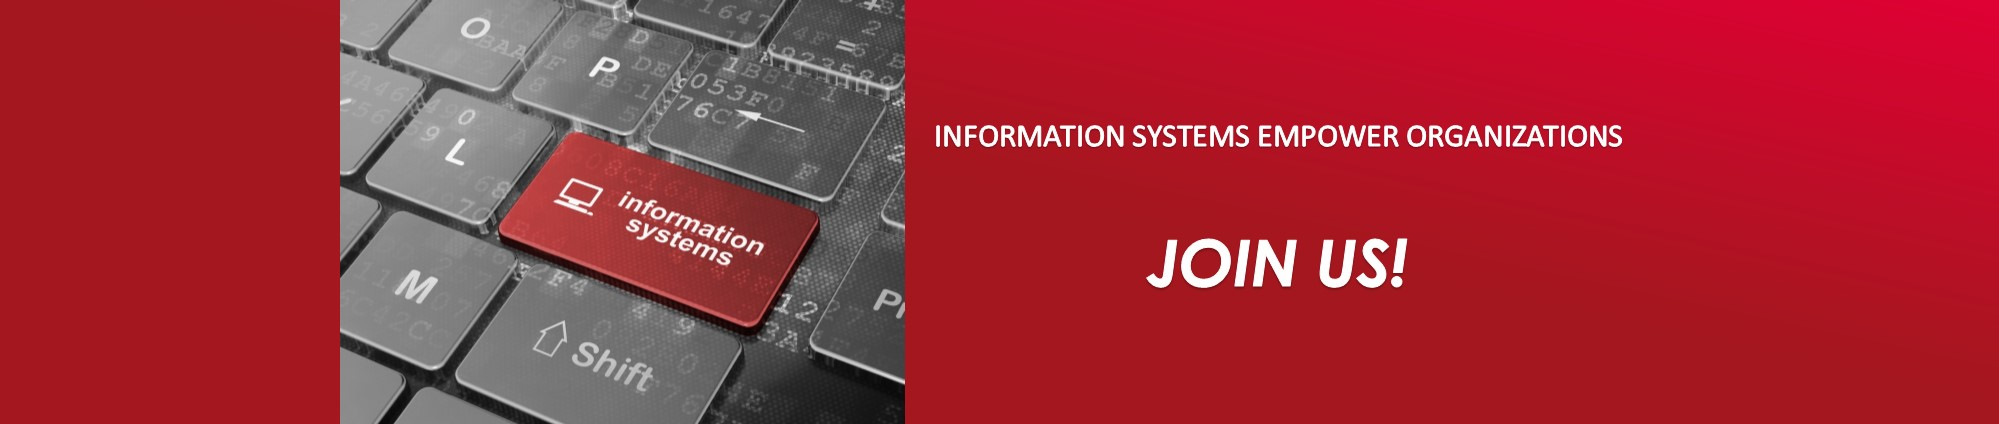 Information Systems Empower Organizations - Join Us!